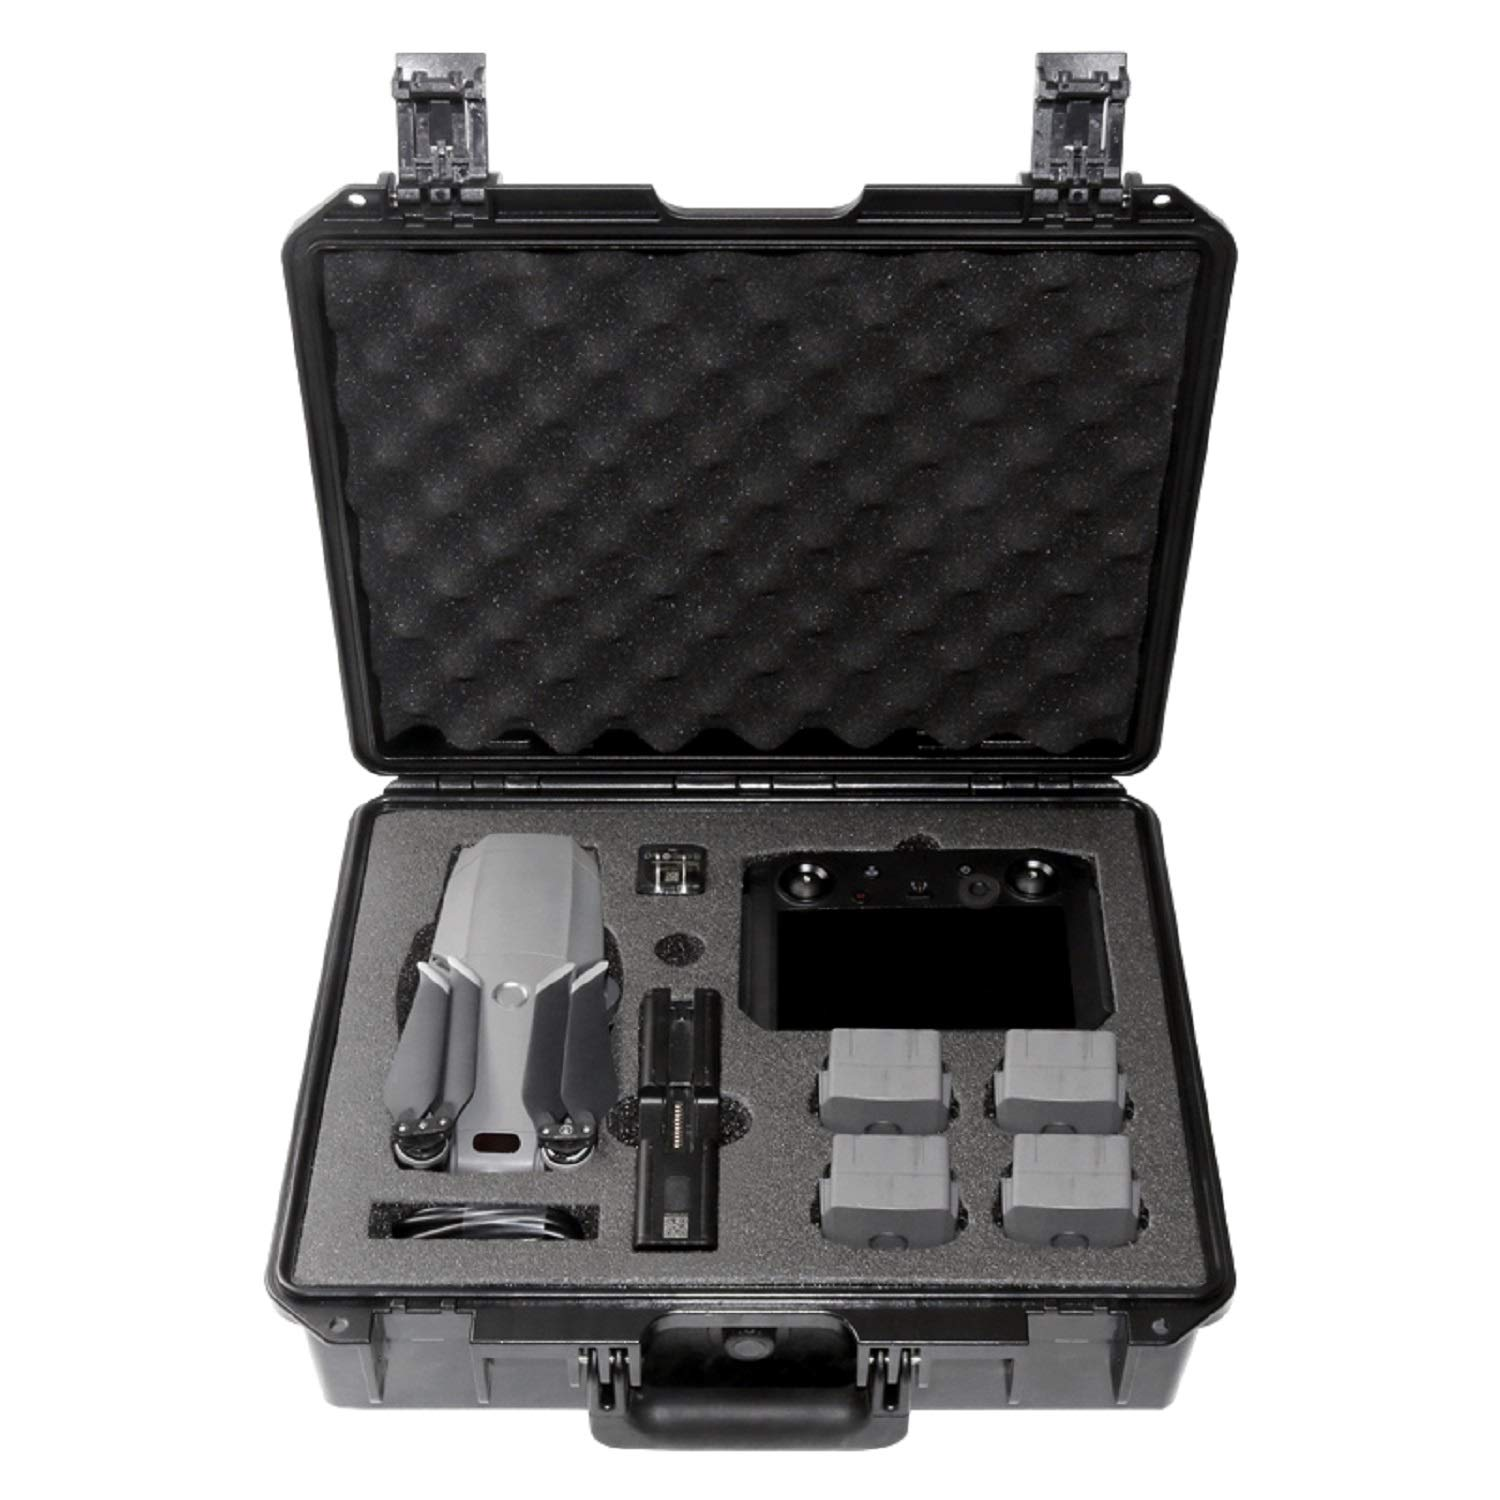 Koozam DJI Mavic 2 Waterproof Hard Case, with Smart Controller, for Mavic 2 Pro and Zoom Drones, Waterproof and Shockproof